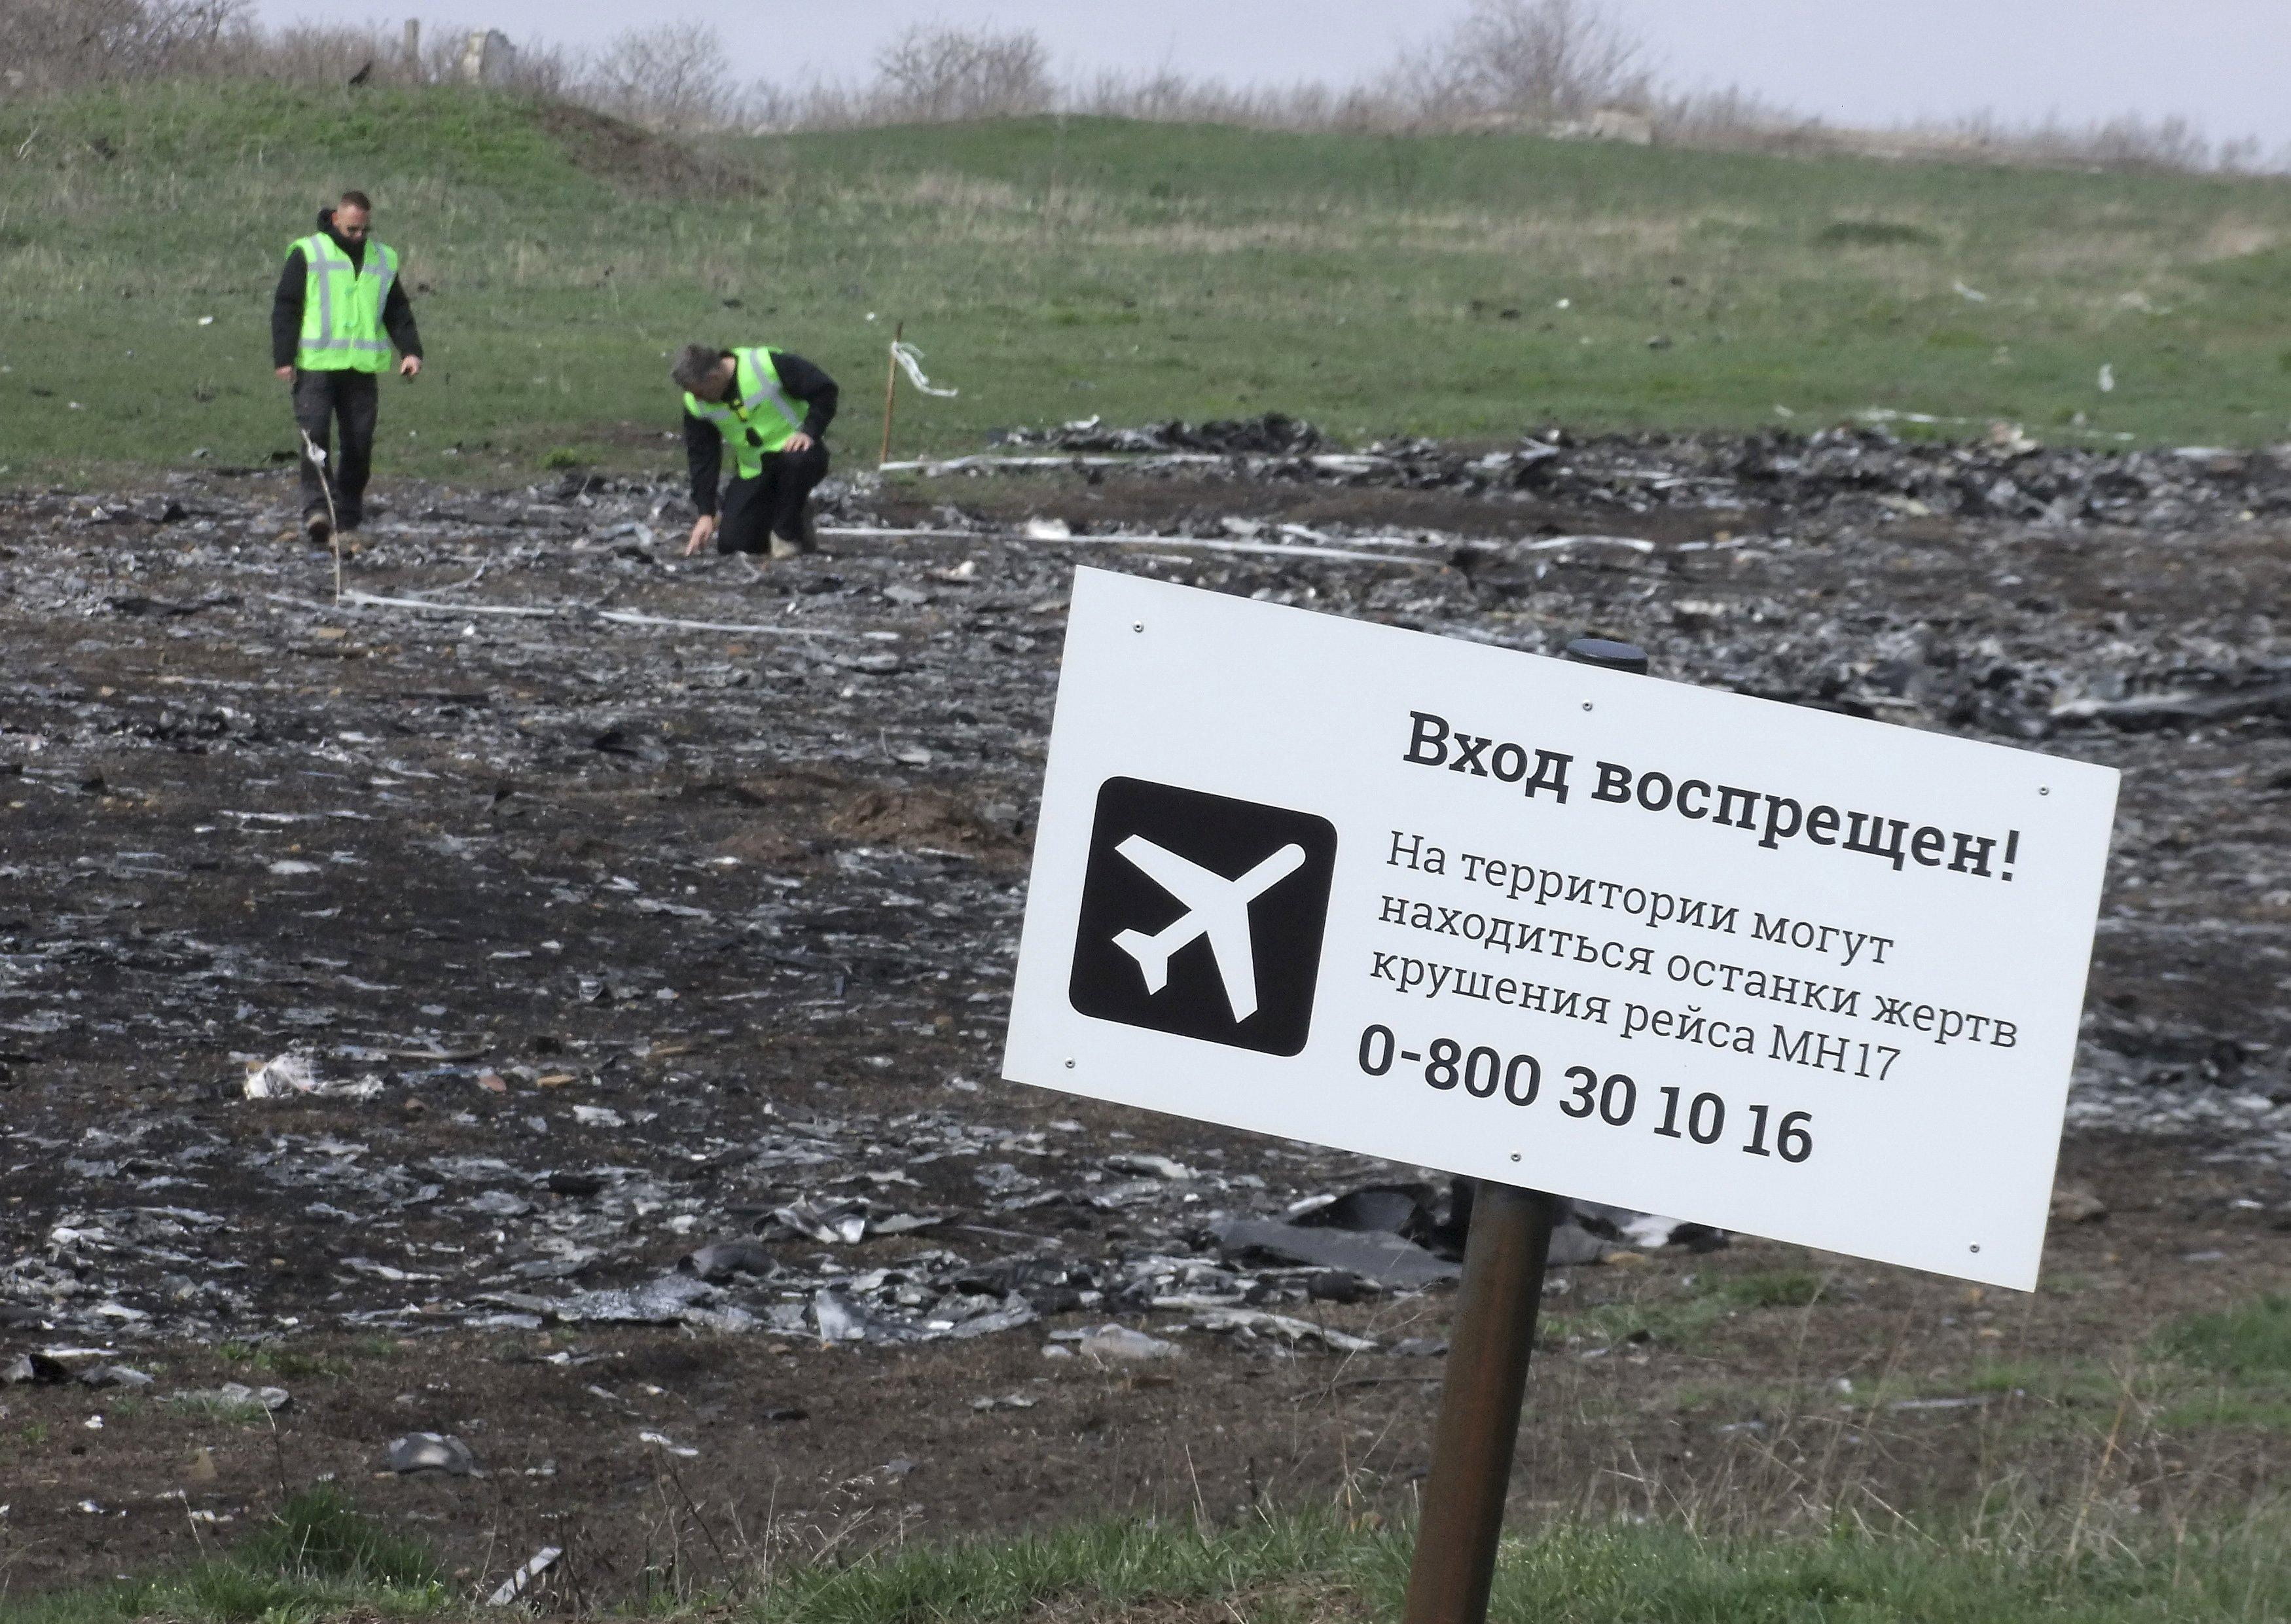 Anthropologist criticized for showing images of MH17 victims